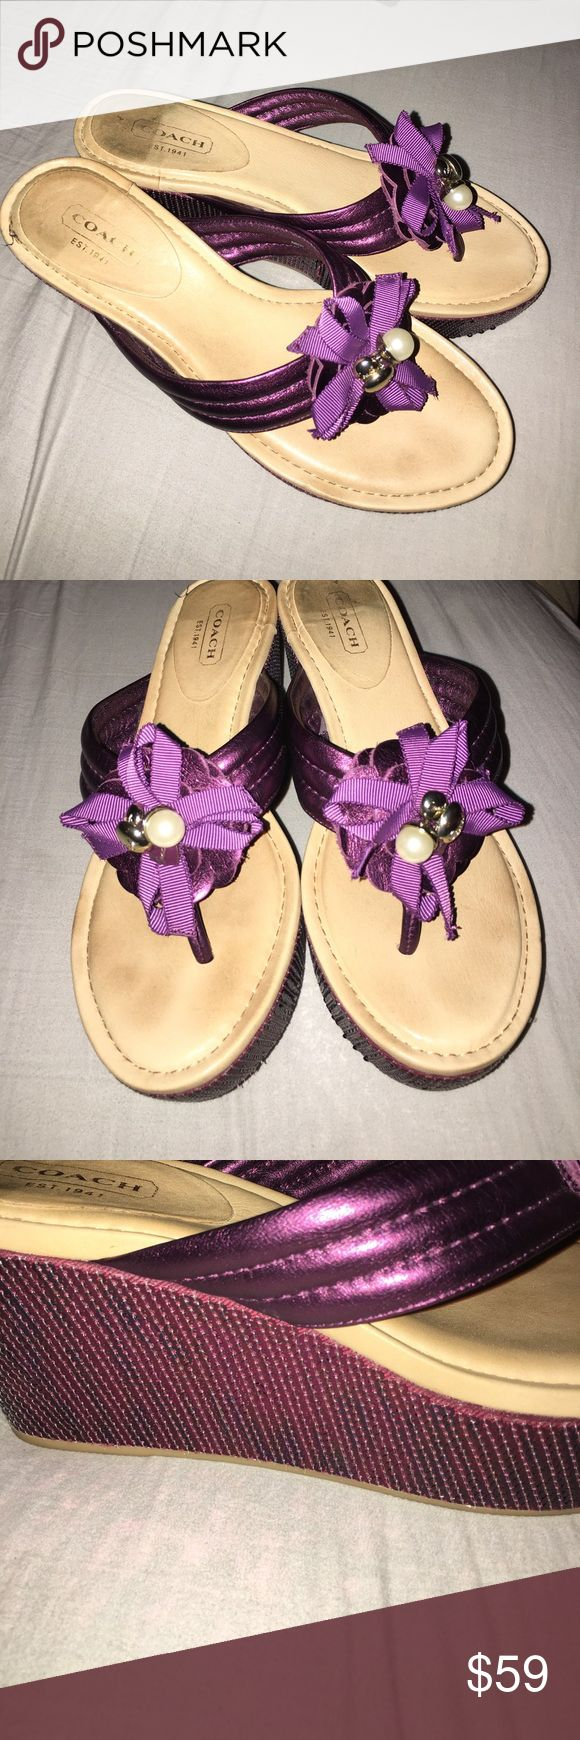 "Coach ""Janis"" 6.5 Purple Wedge Sandals Beautiful Coach 6.5 Purple Sparkling Wedge Sandals Coach Shoes Sandals"